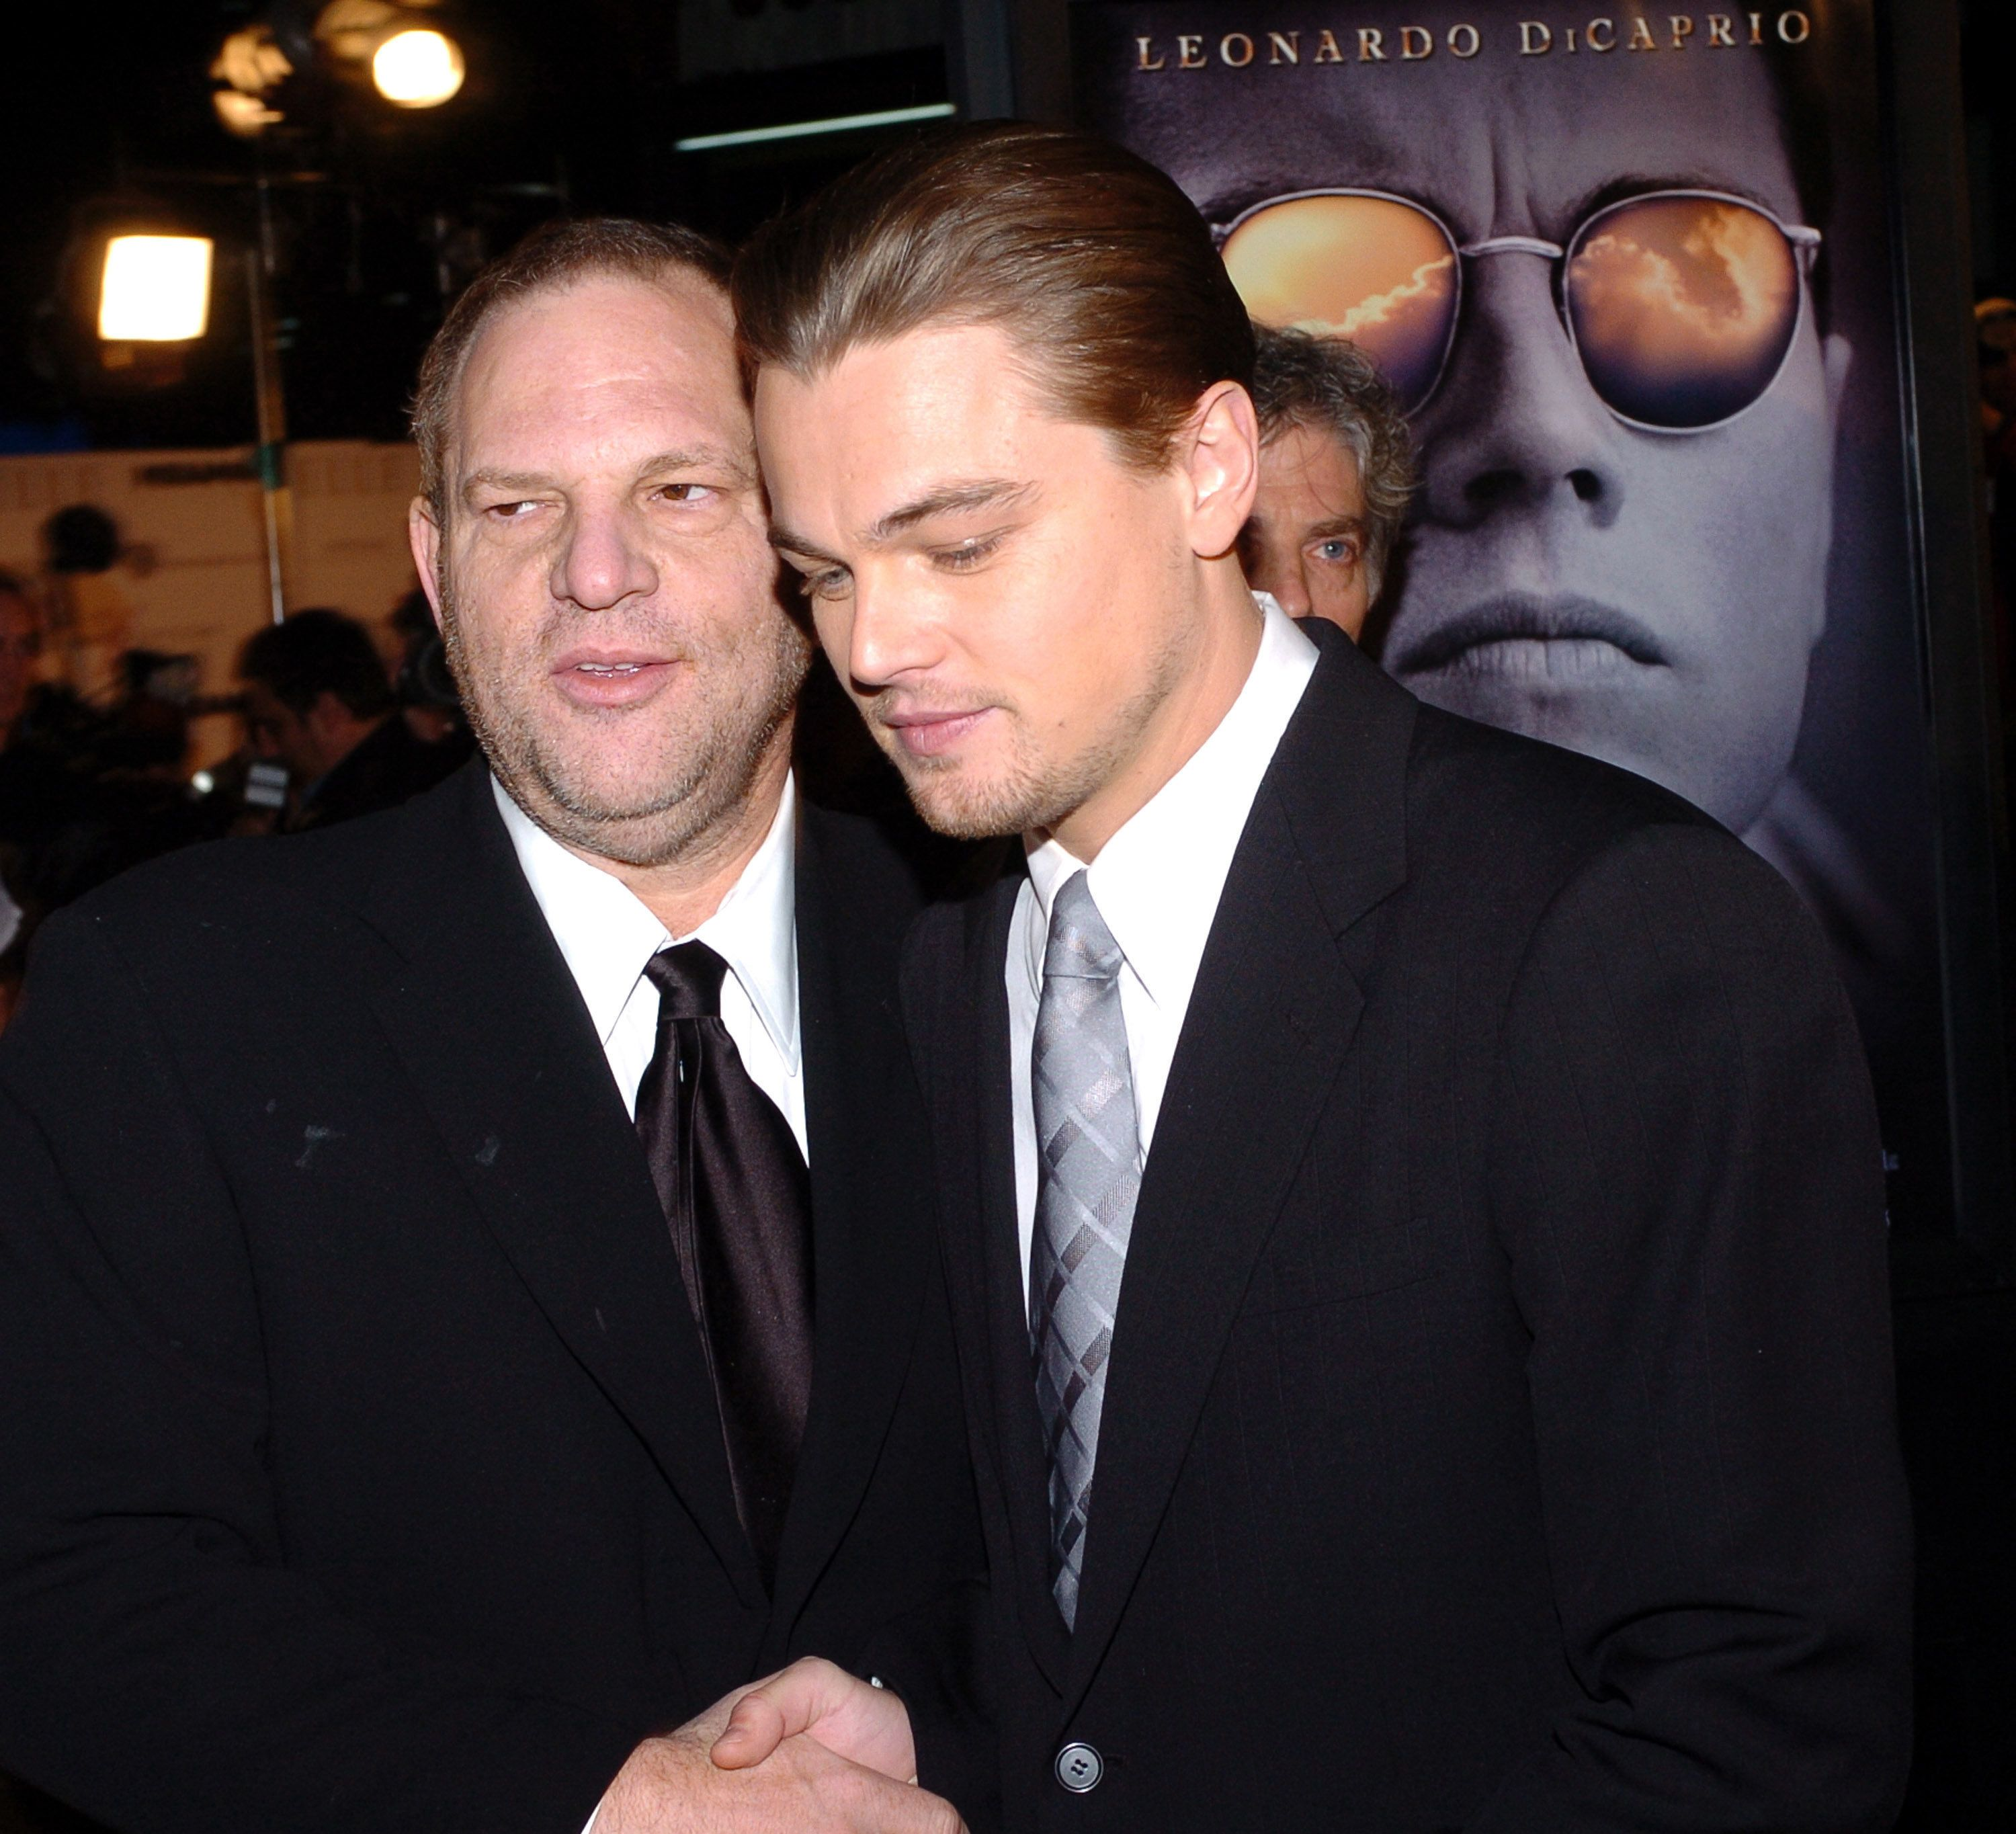 Harvey Weinstein and Leonardo DiCaprio during 'The Aviator' Los Angeles Premiere - Red Carpet at Graumann's Chinese in Los Angeles, California, United States. (Photo by L. Cohen/WireImage)